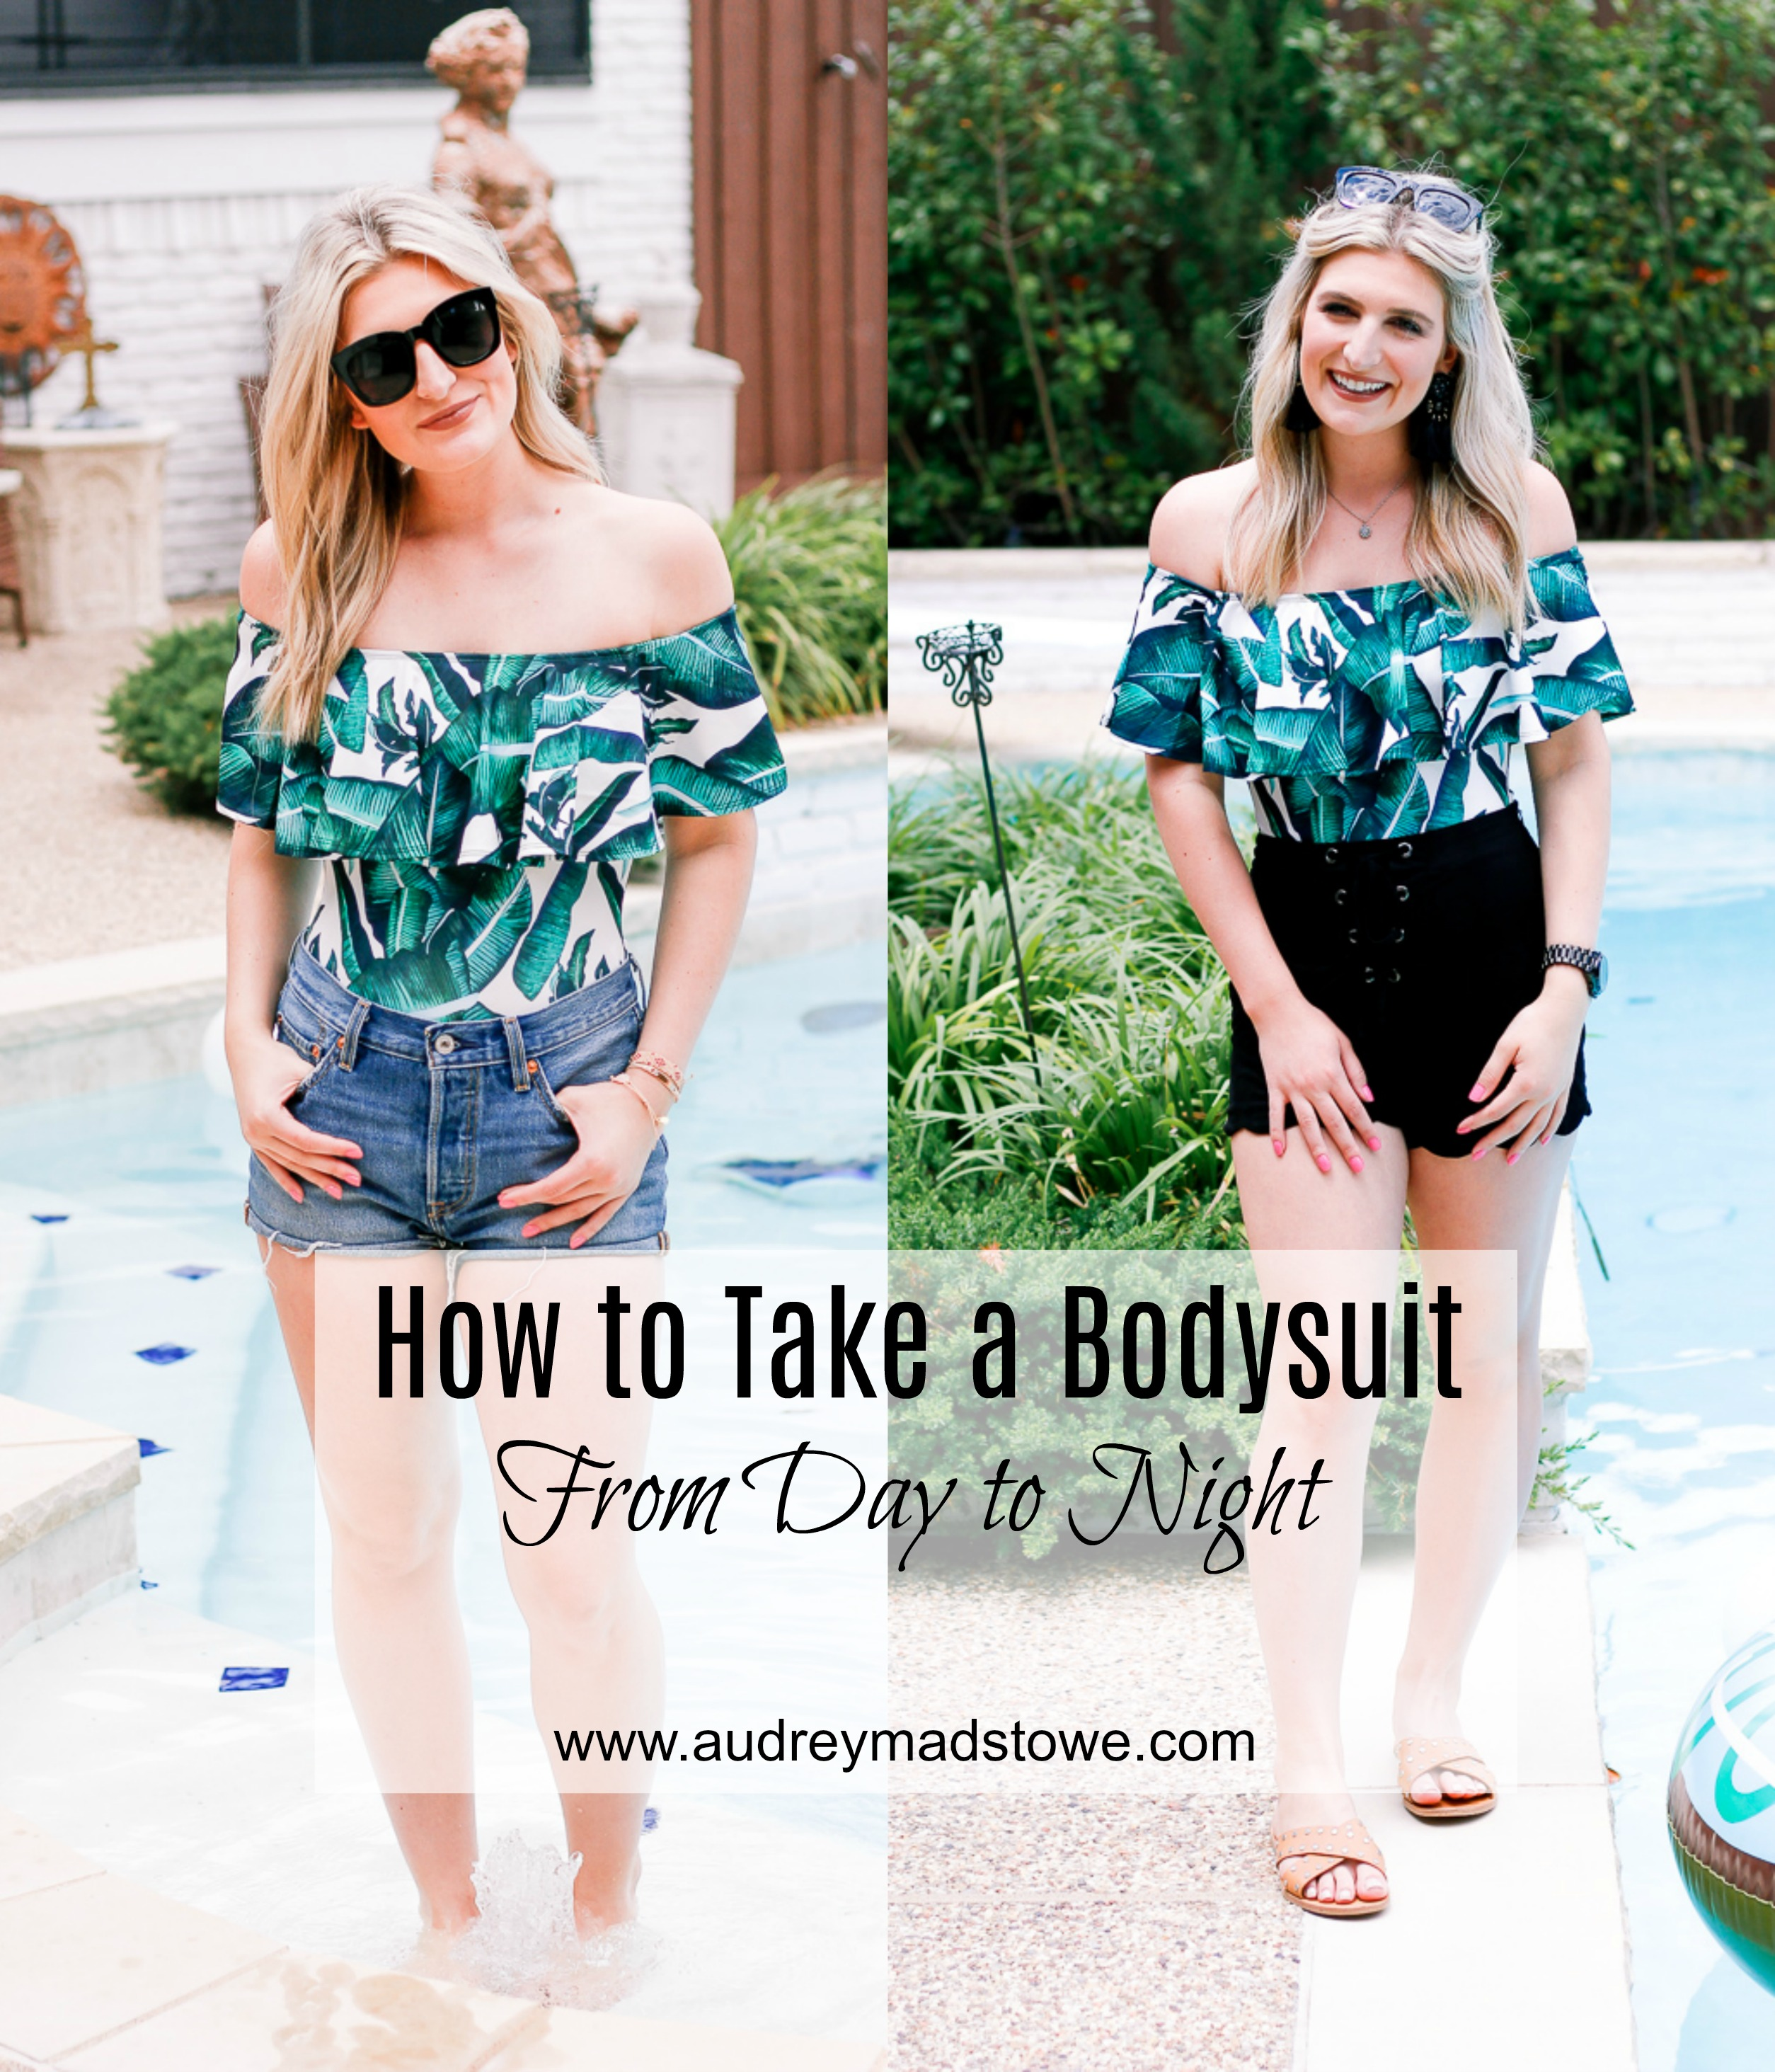 How To Take a Bodysuit from Day to Night | Shein style | Fashion and beauty blogger Audrey Madison Stowe